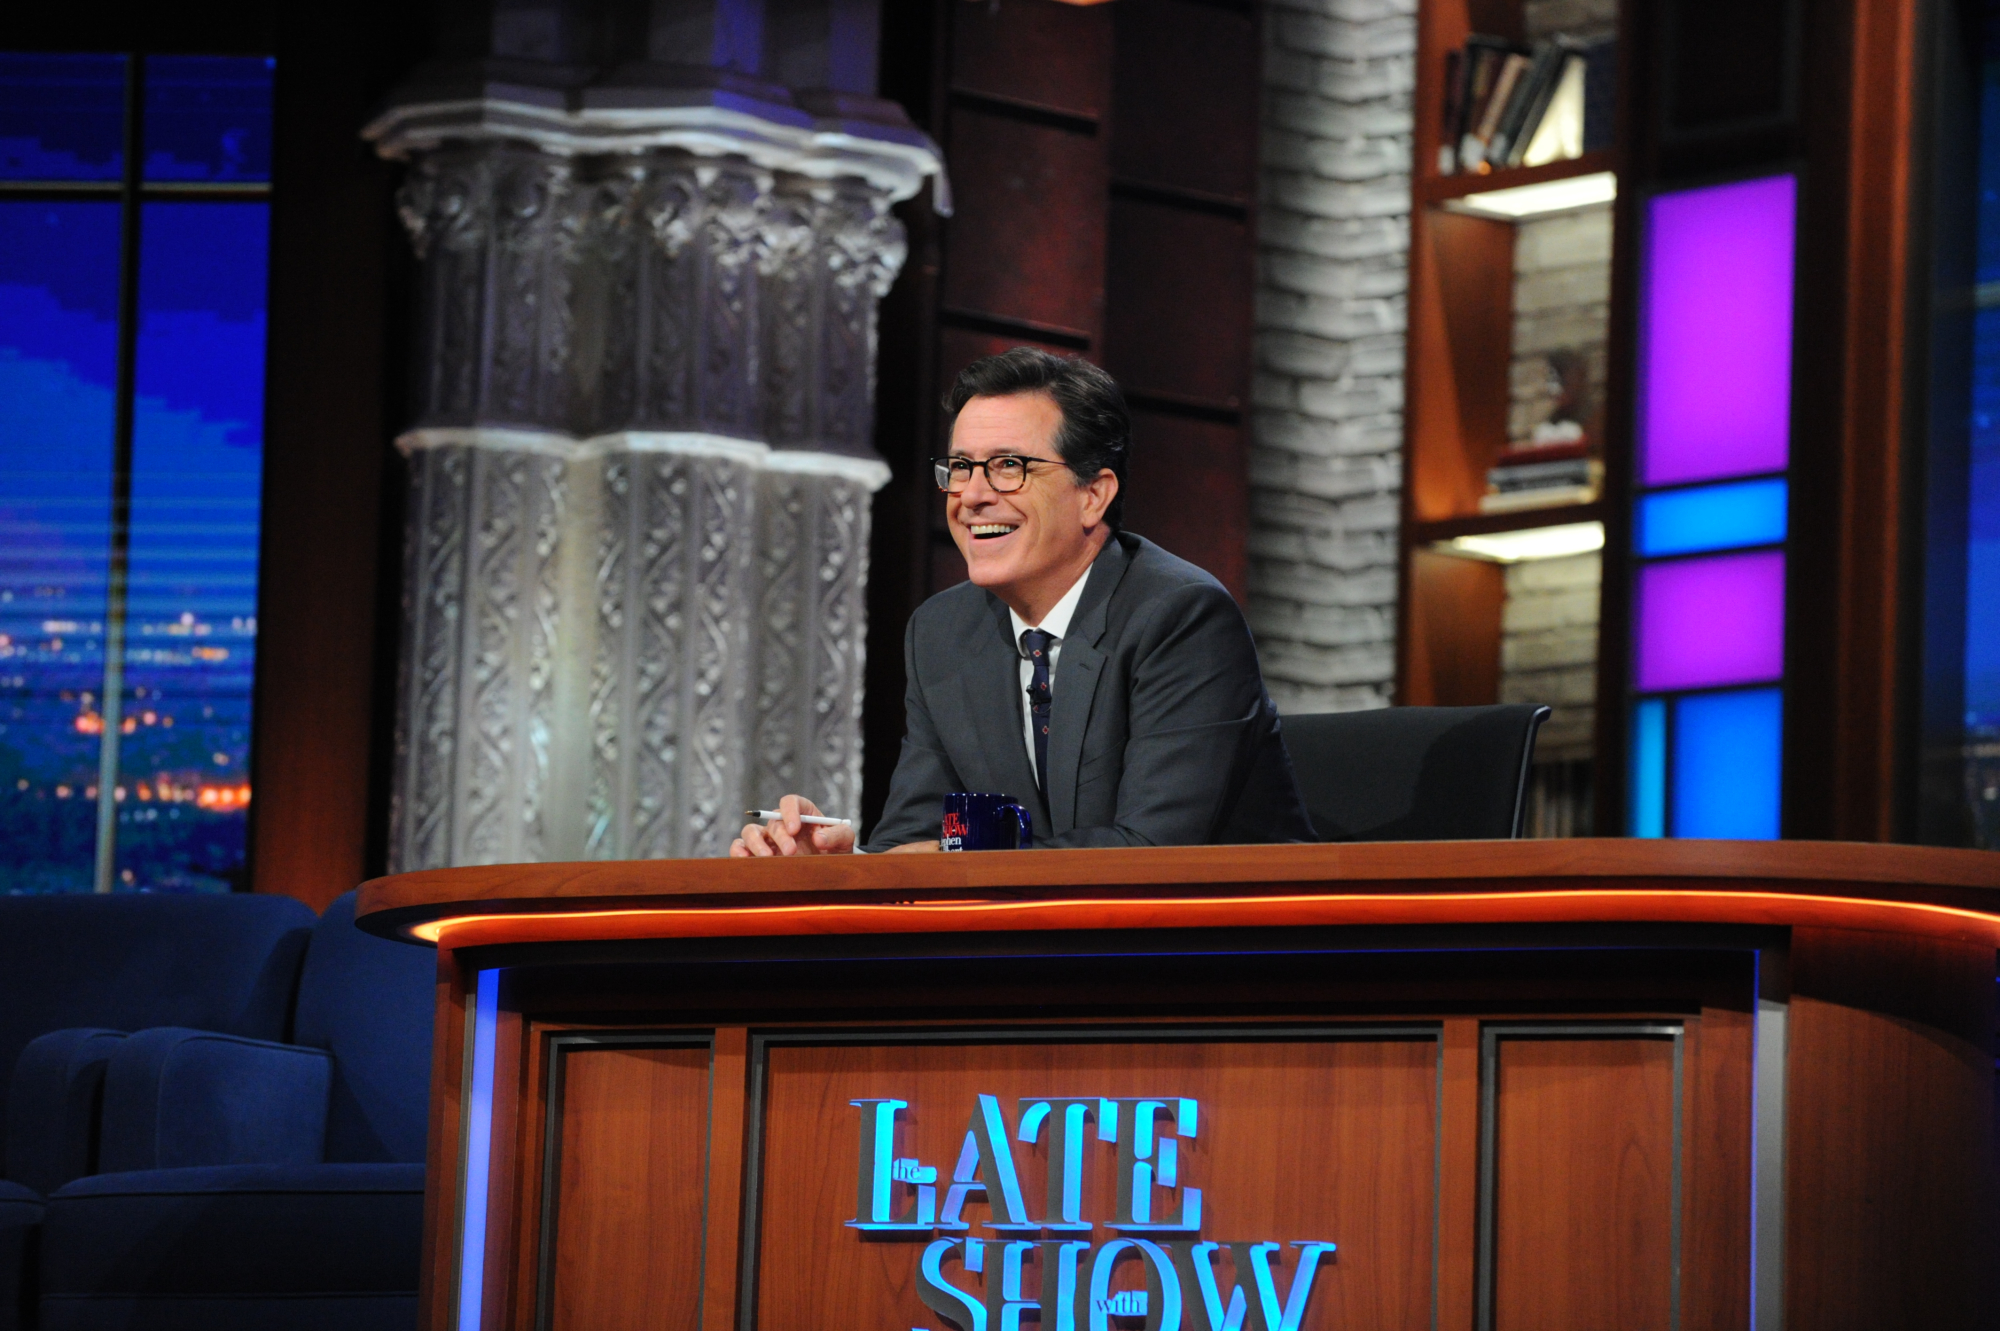 The Late Show with Stephen Colbert on Tuesday, September 20, 2016.